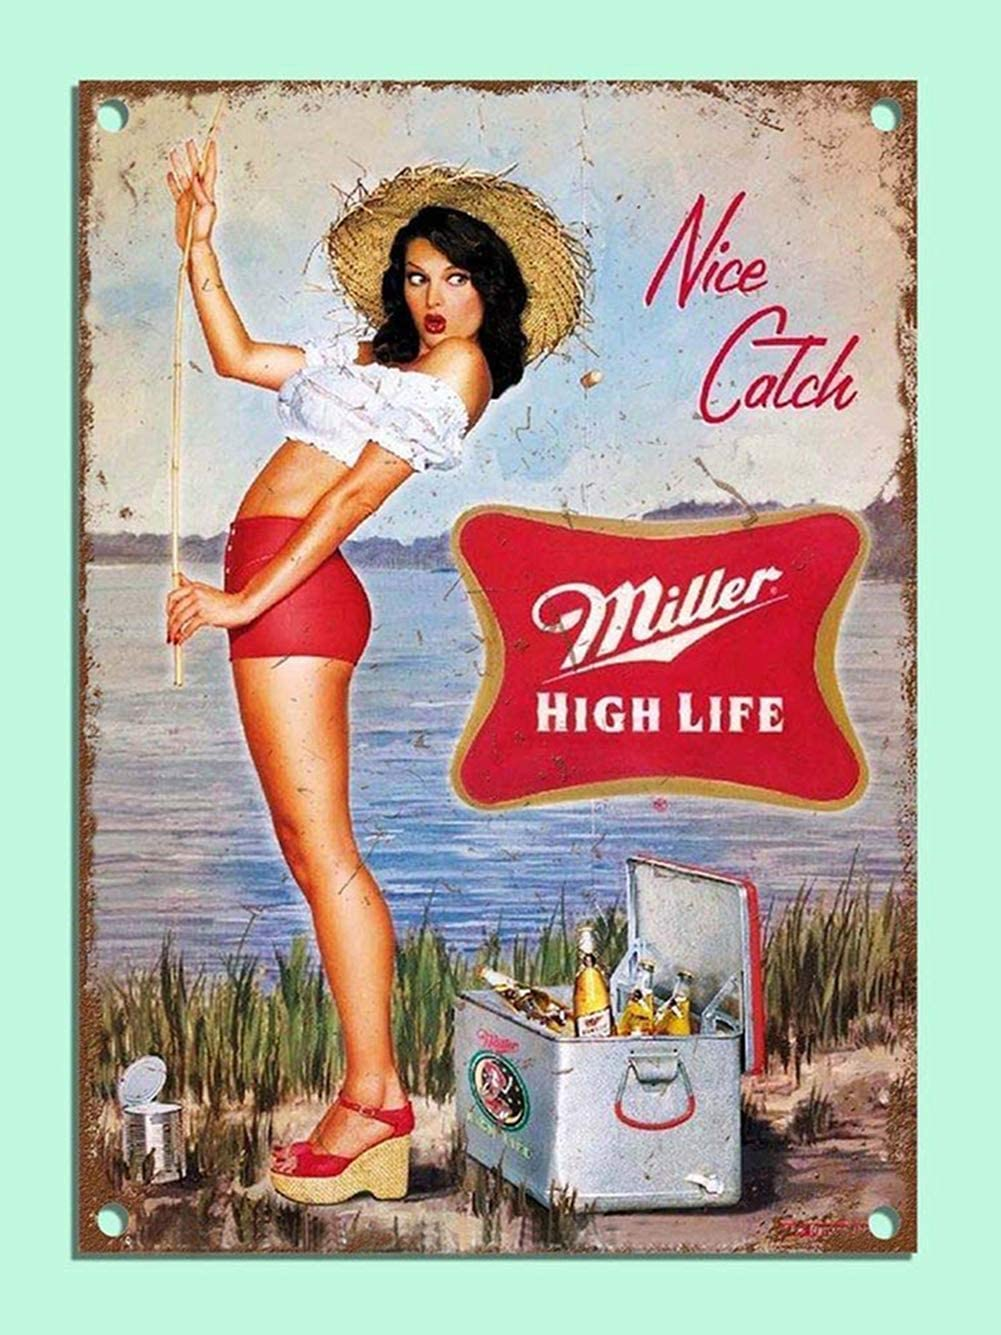 LPLED Wall Decor Sign Retro Style Miller Beer Girl Fishing Bar Den Aluminum Metal Sign 8x12 INCH (W4020)